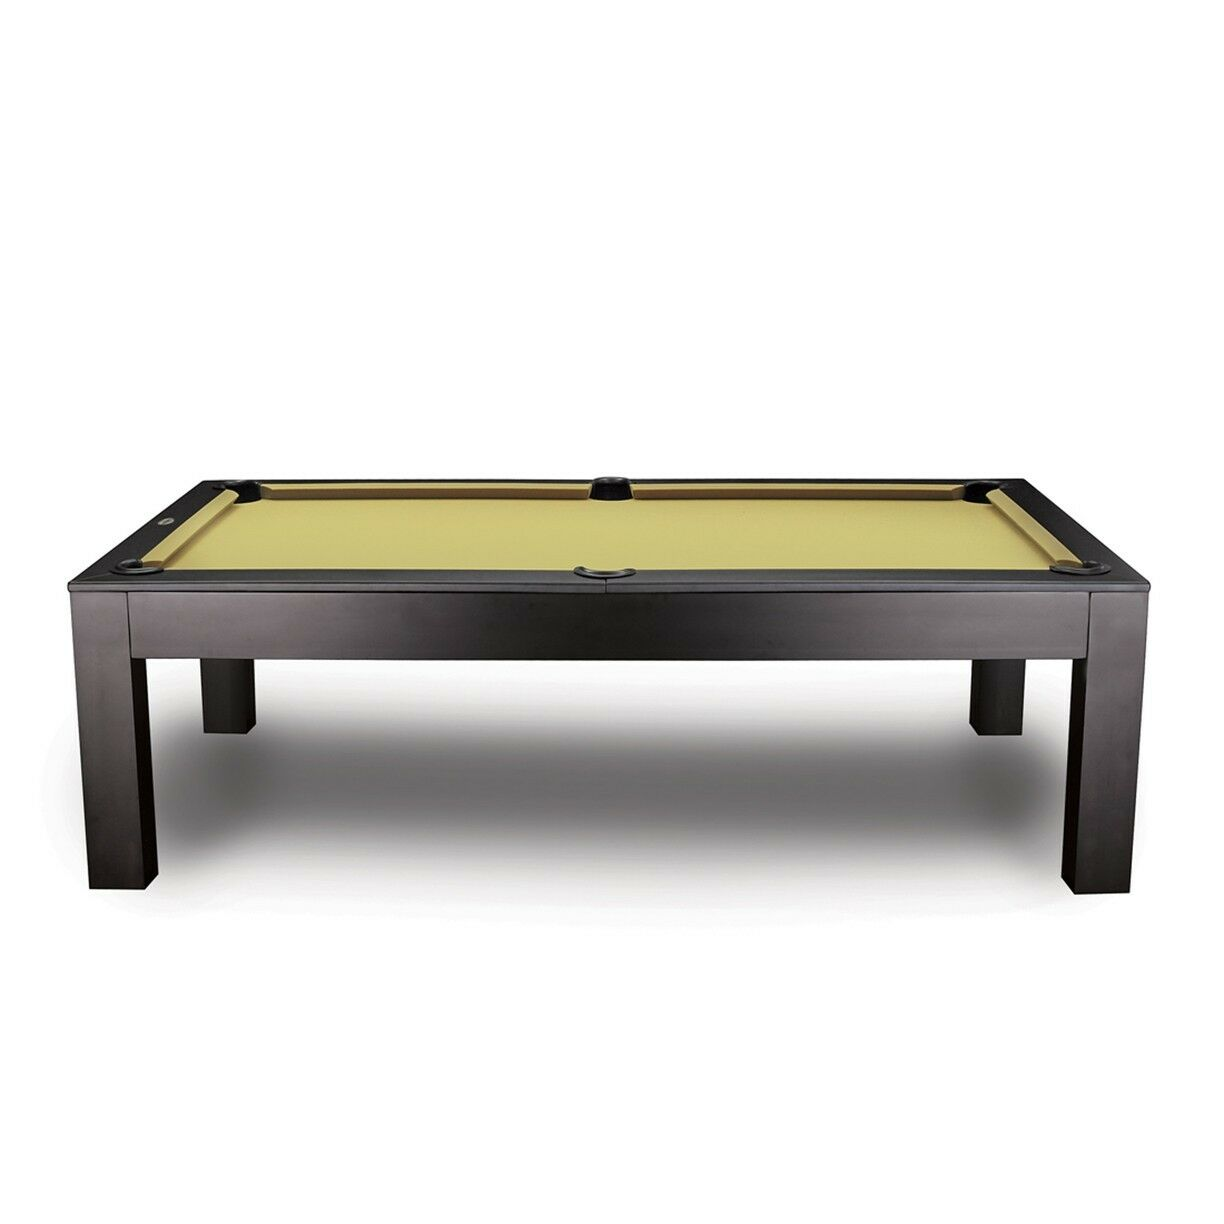 8' Penelope Slate Pool Table including Matching Dining Top in Walnut Finish